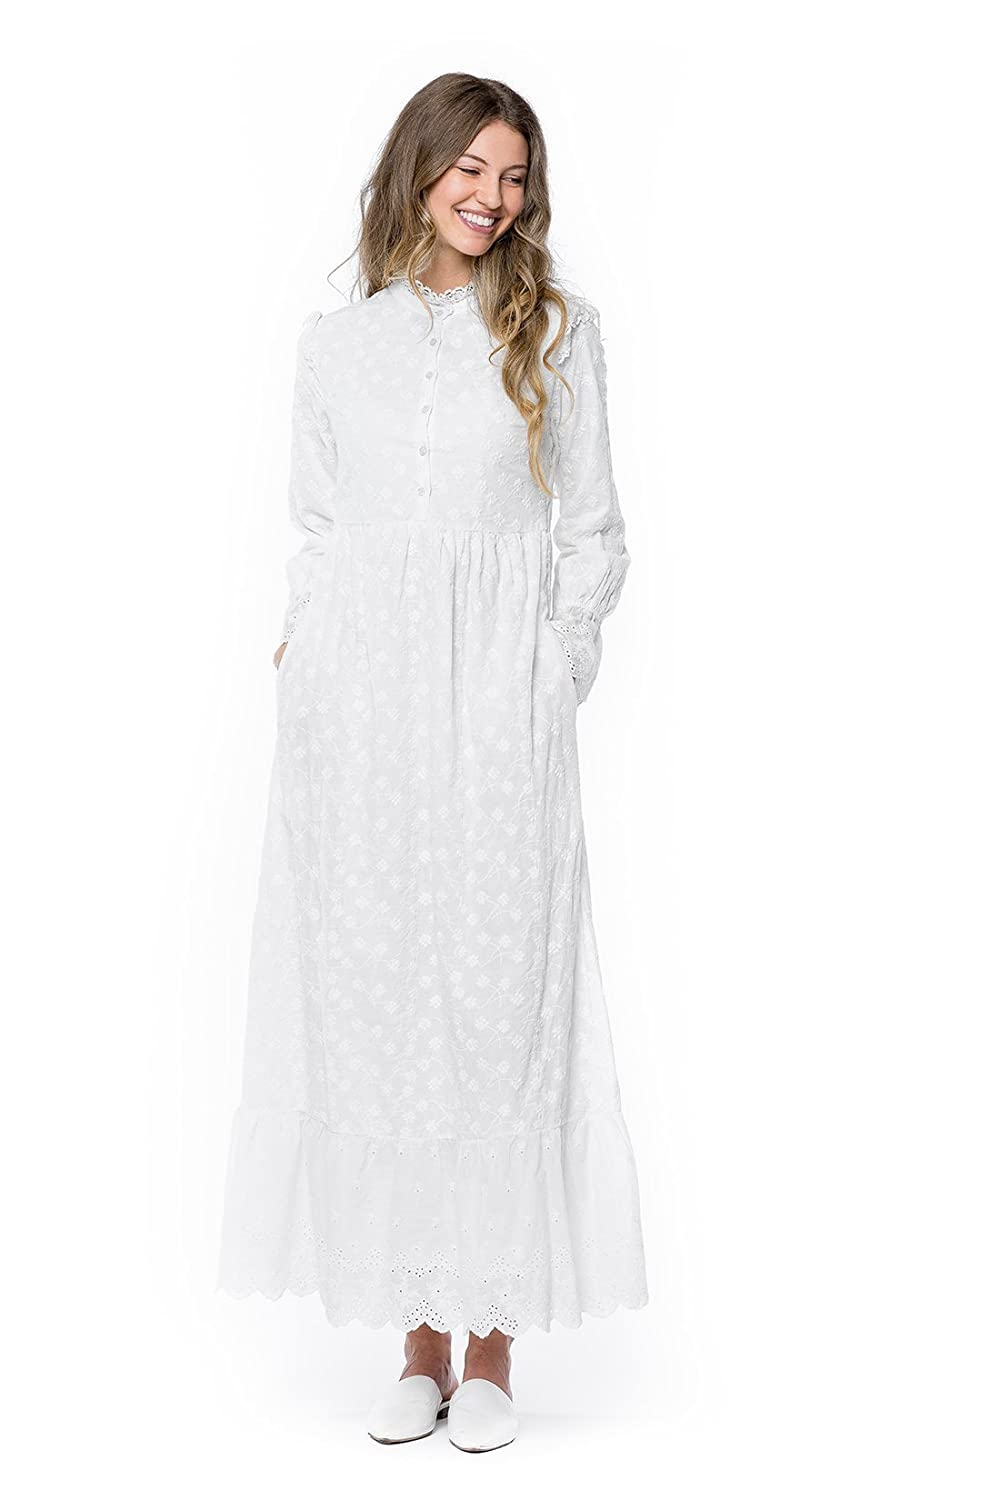 Old Fashioned Dresses | Old Dress Styles ModWhite Magnolia White Temple Dress $89.00 AT vintagedancer.com